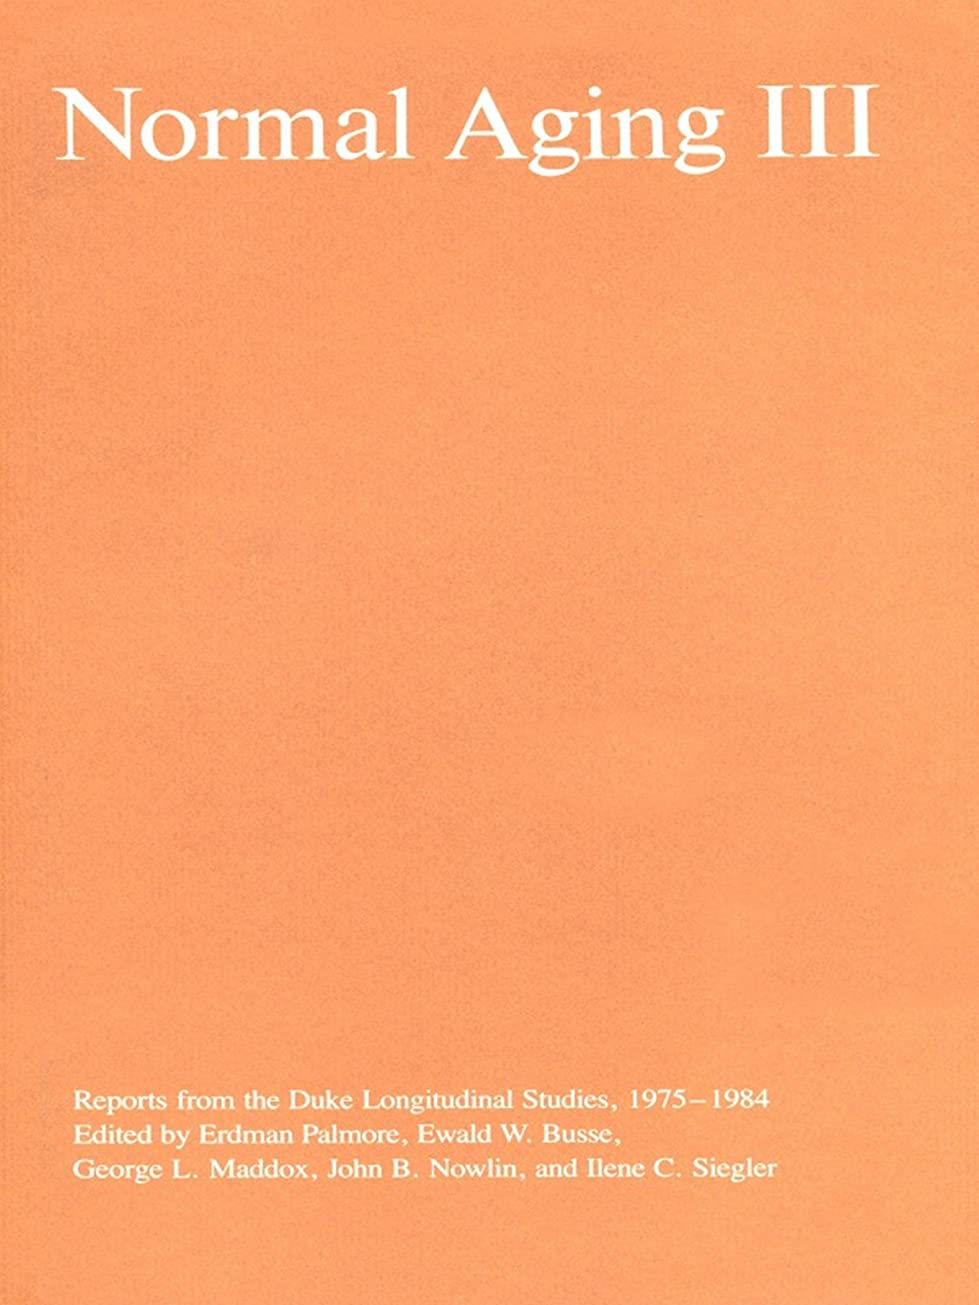 商品テレビ局幻滅するNormal Aging III: Reports from the Duke Longitudinal Studies, 1975–1984 (English Edition)